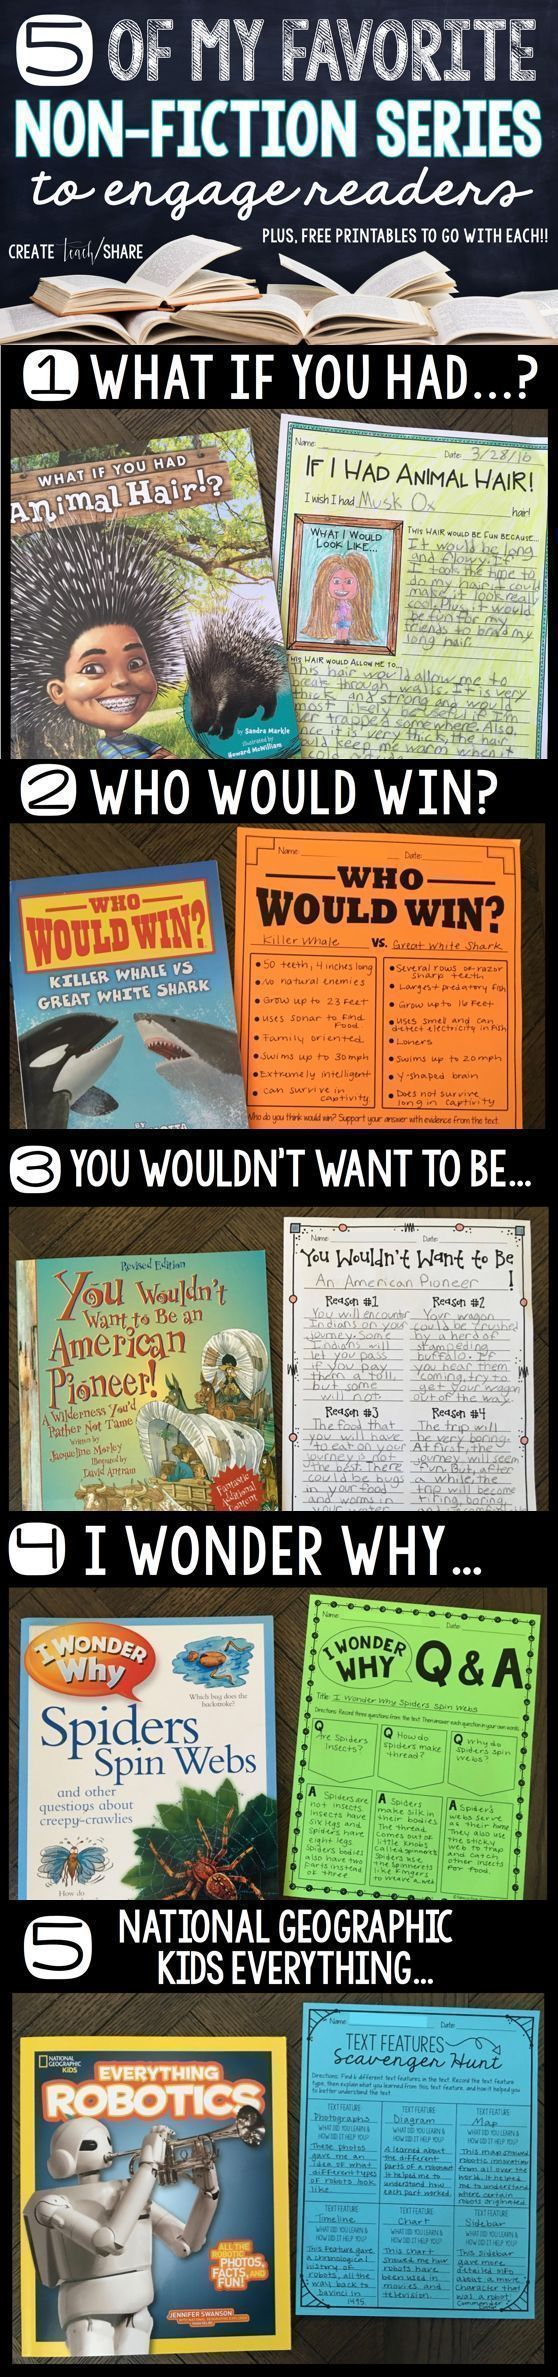 5 of My Favorite Non-Fiction Series to Engage Readers. FREEBIES to go with each book series. Perfect for elementary and upper grades.